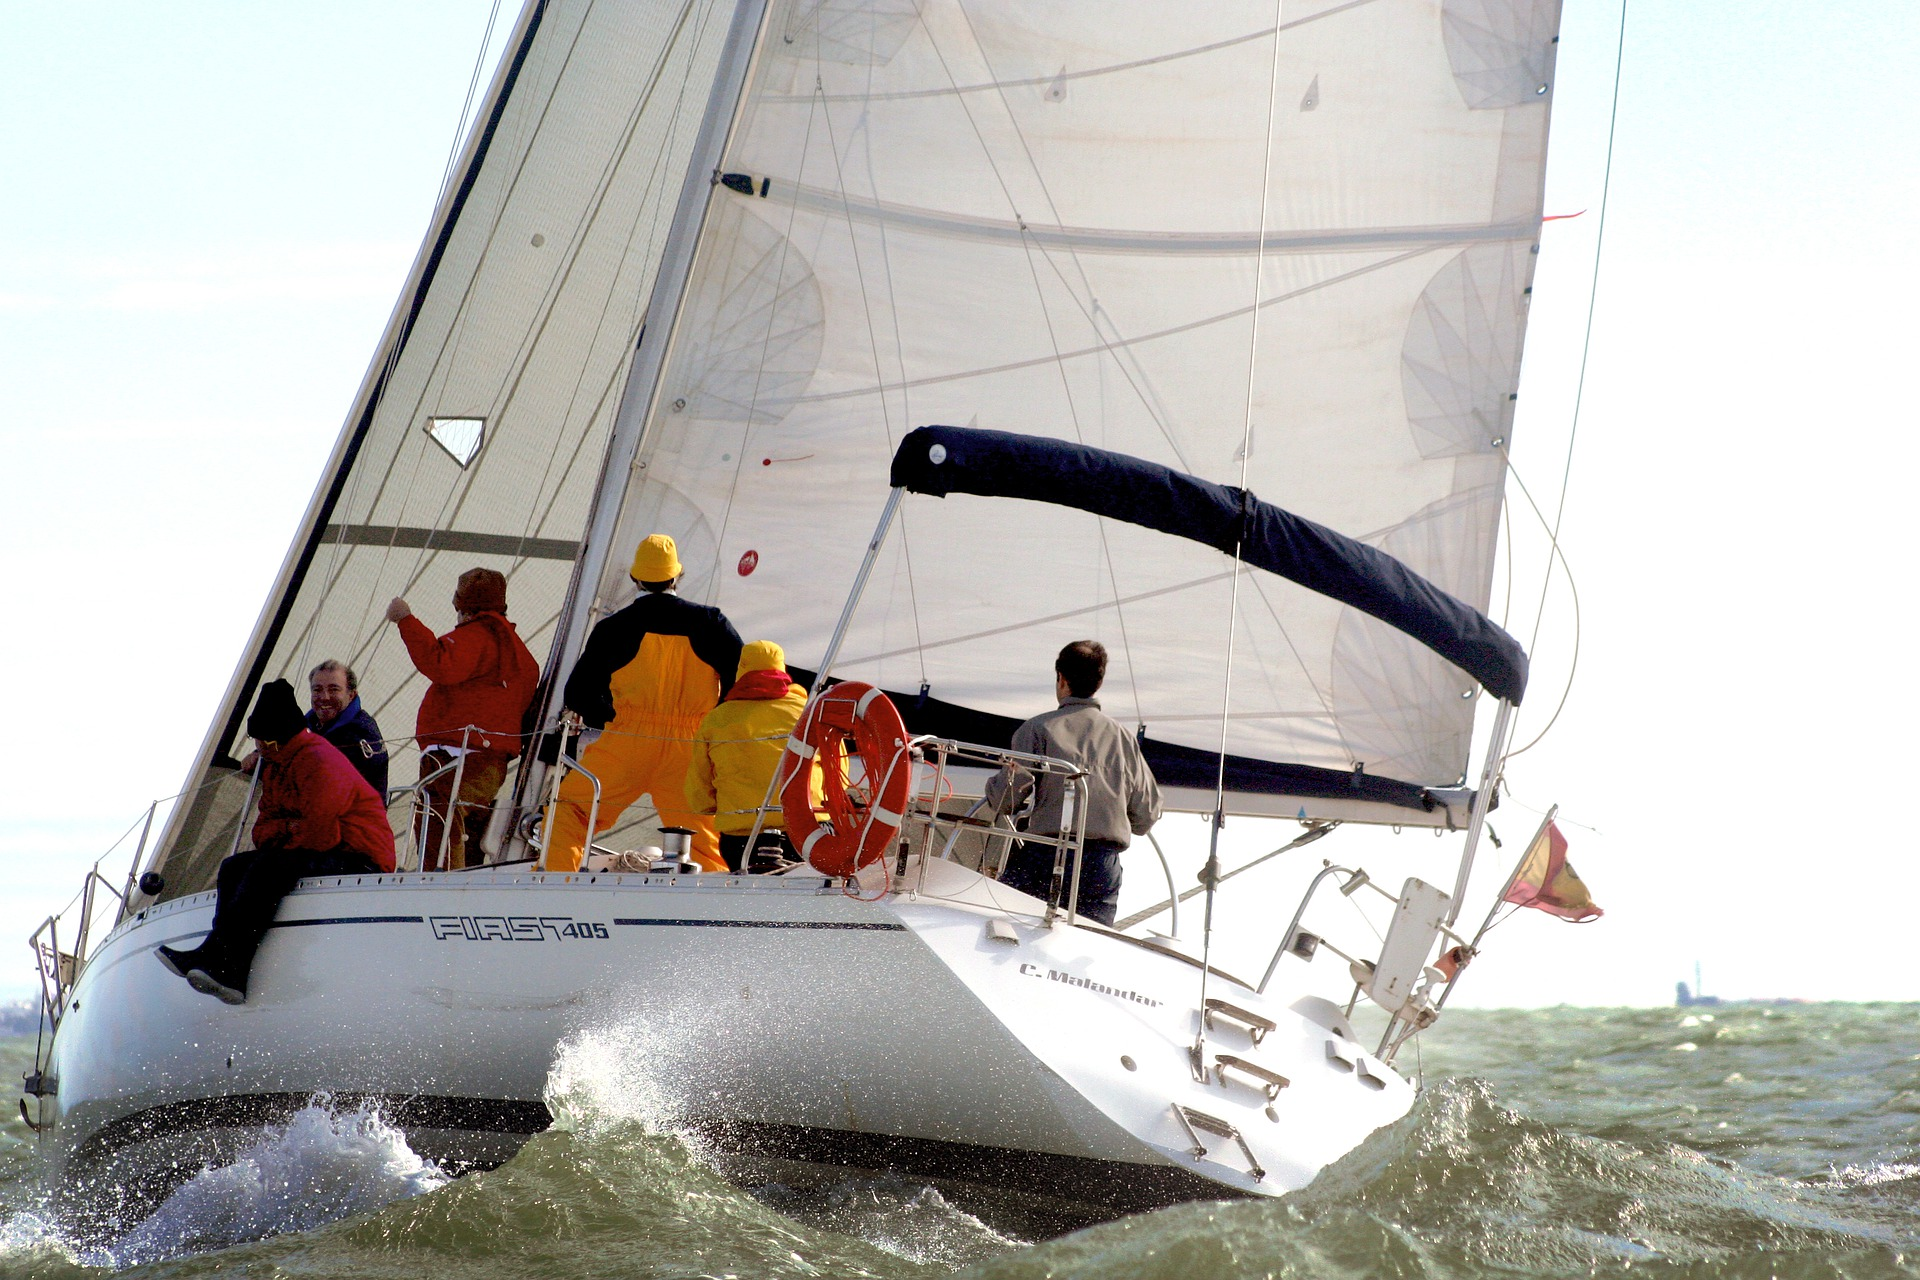 wechamp-team-building-voile-athlete-de-haut-niveau